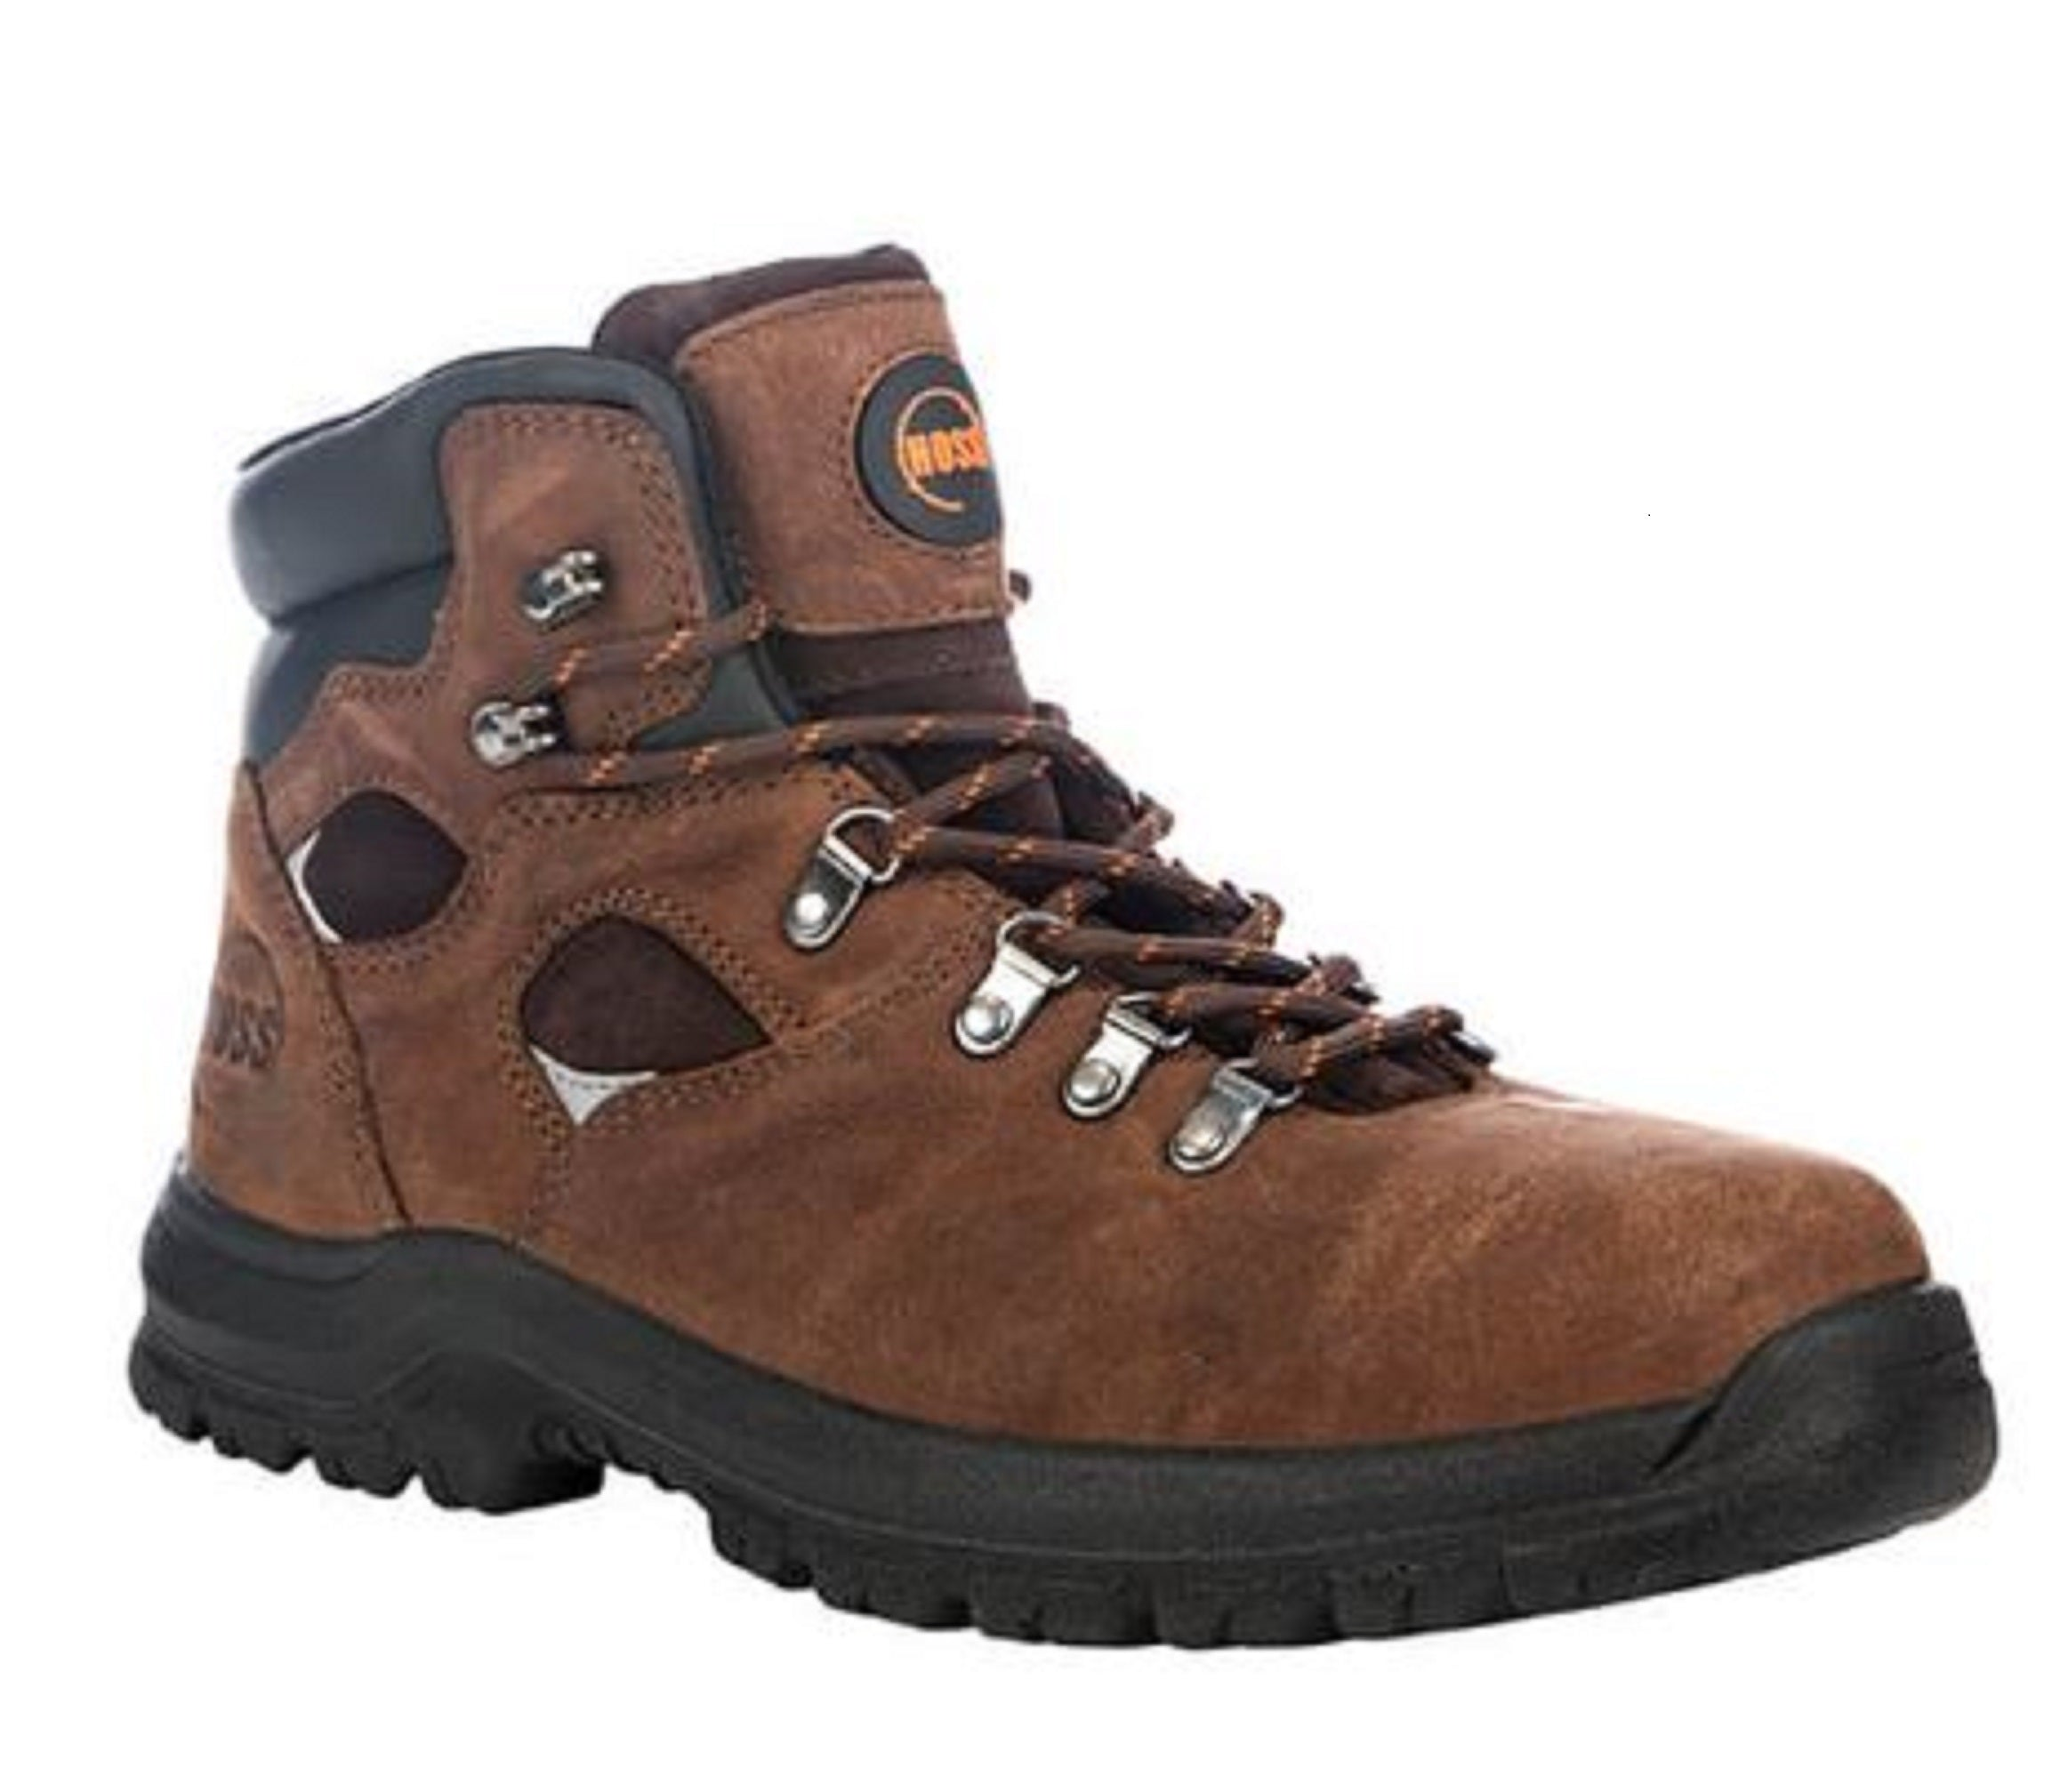 Hoss Men's Brown Steel Toe Electrical Hazard Waterproof Work Boot 60421